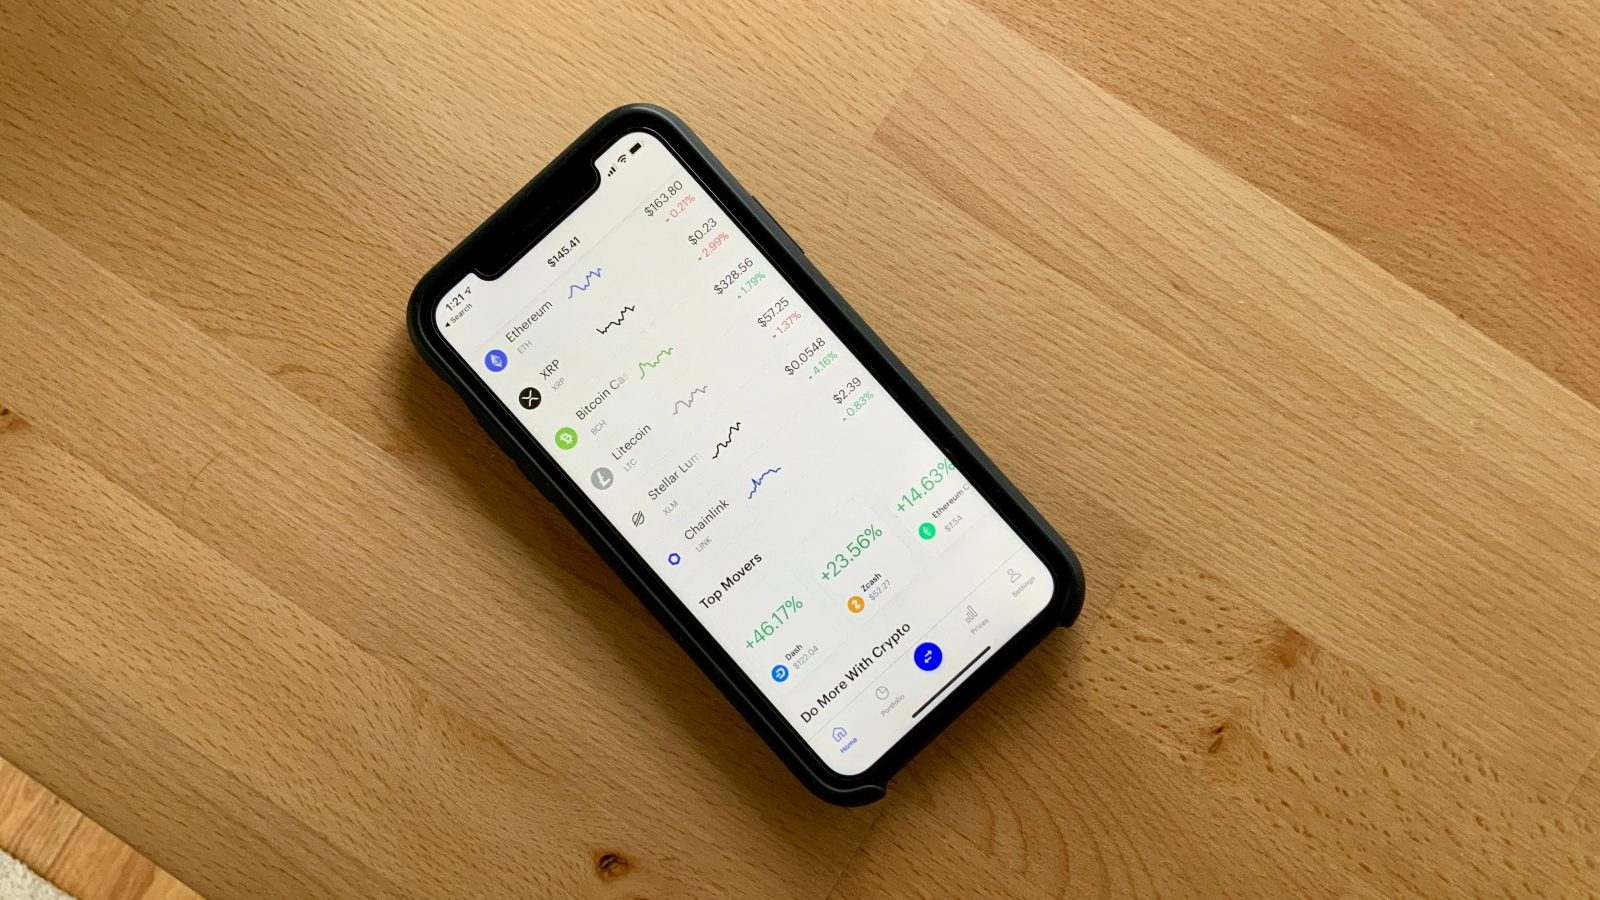 How to buy Bitcoin on your iPhone using Coinbase